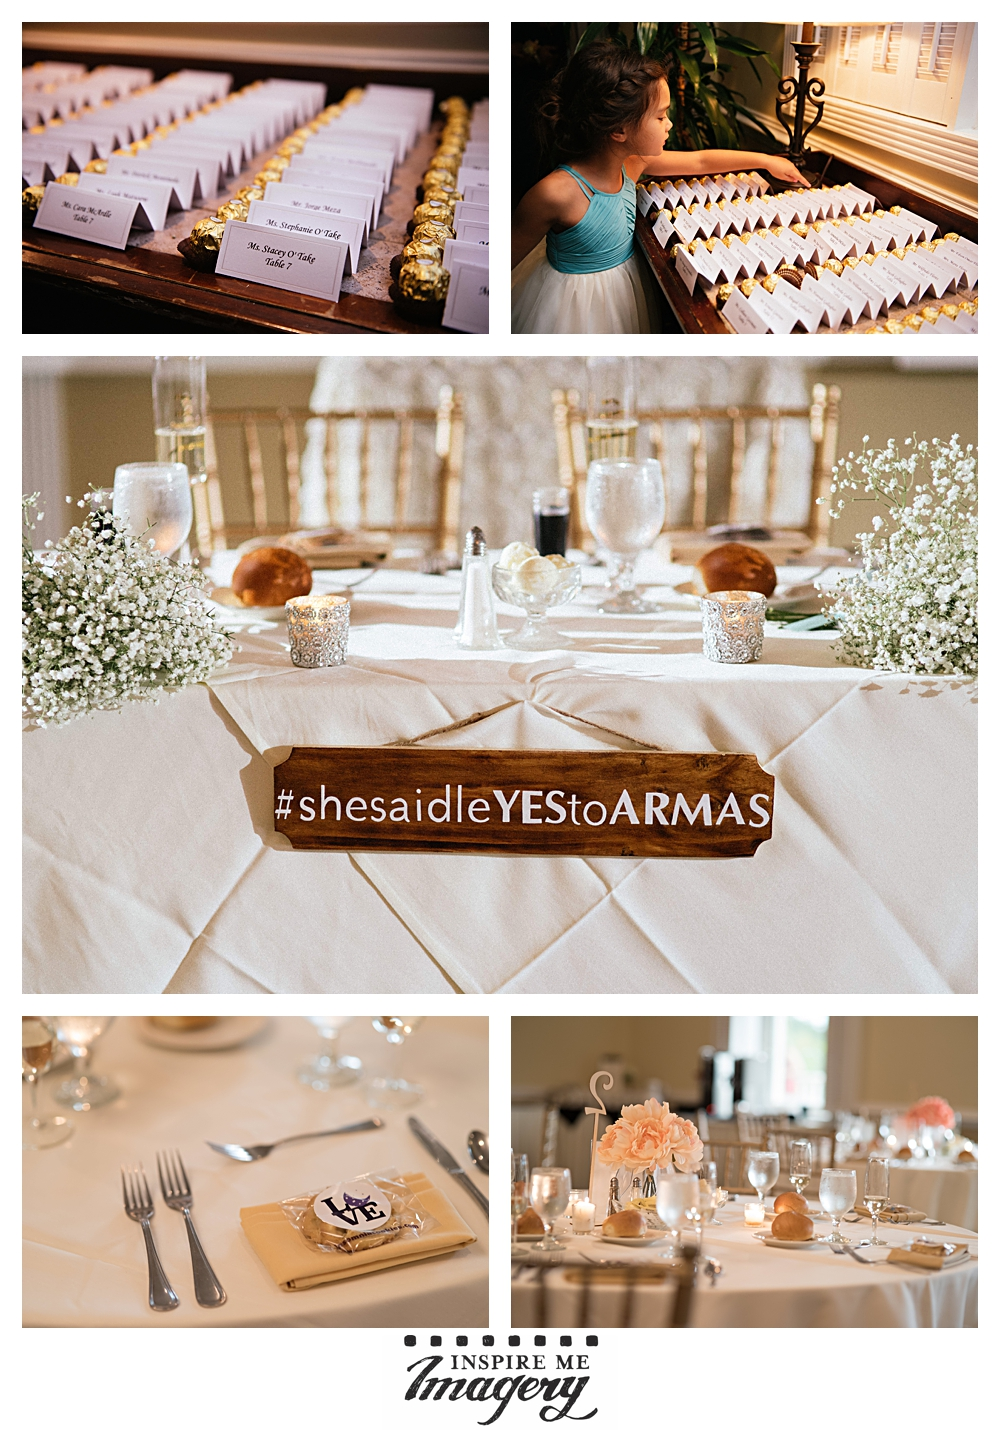 The Copperfield Inn set up the reception room beautifully. We loved the chocolates by the seat placement cards!